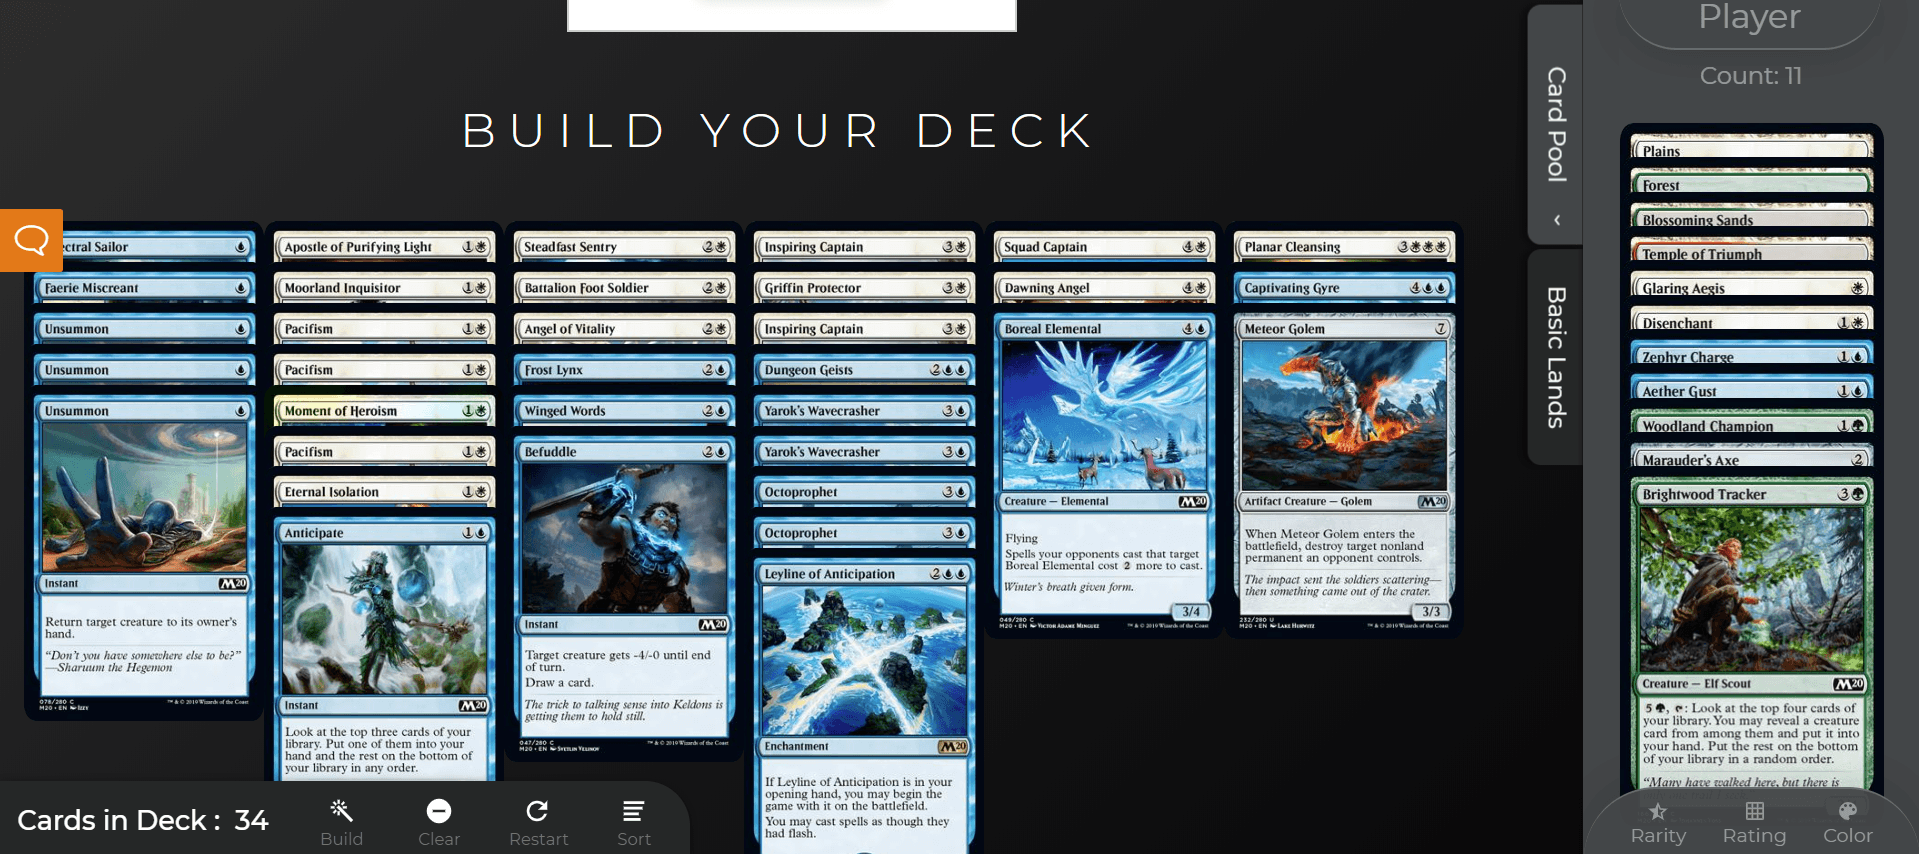 deck already partially built after drafting